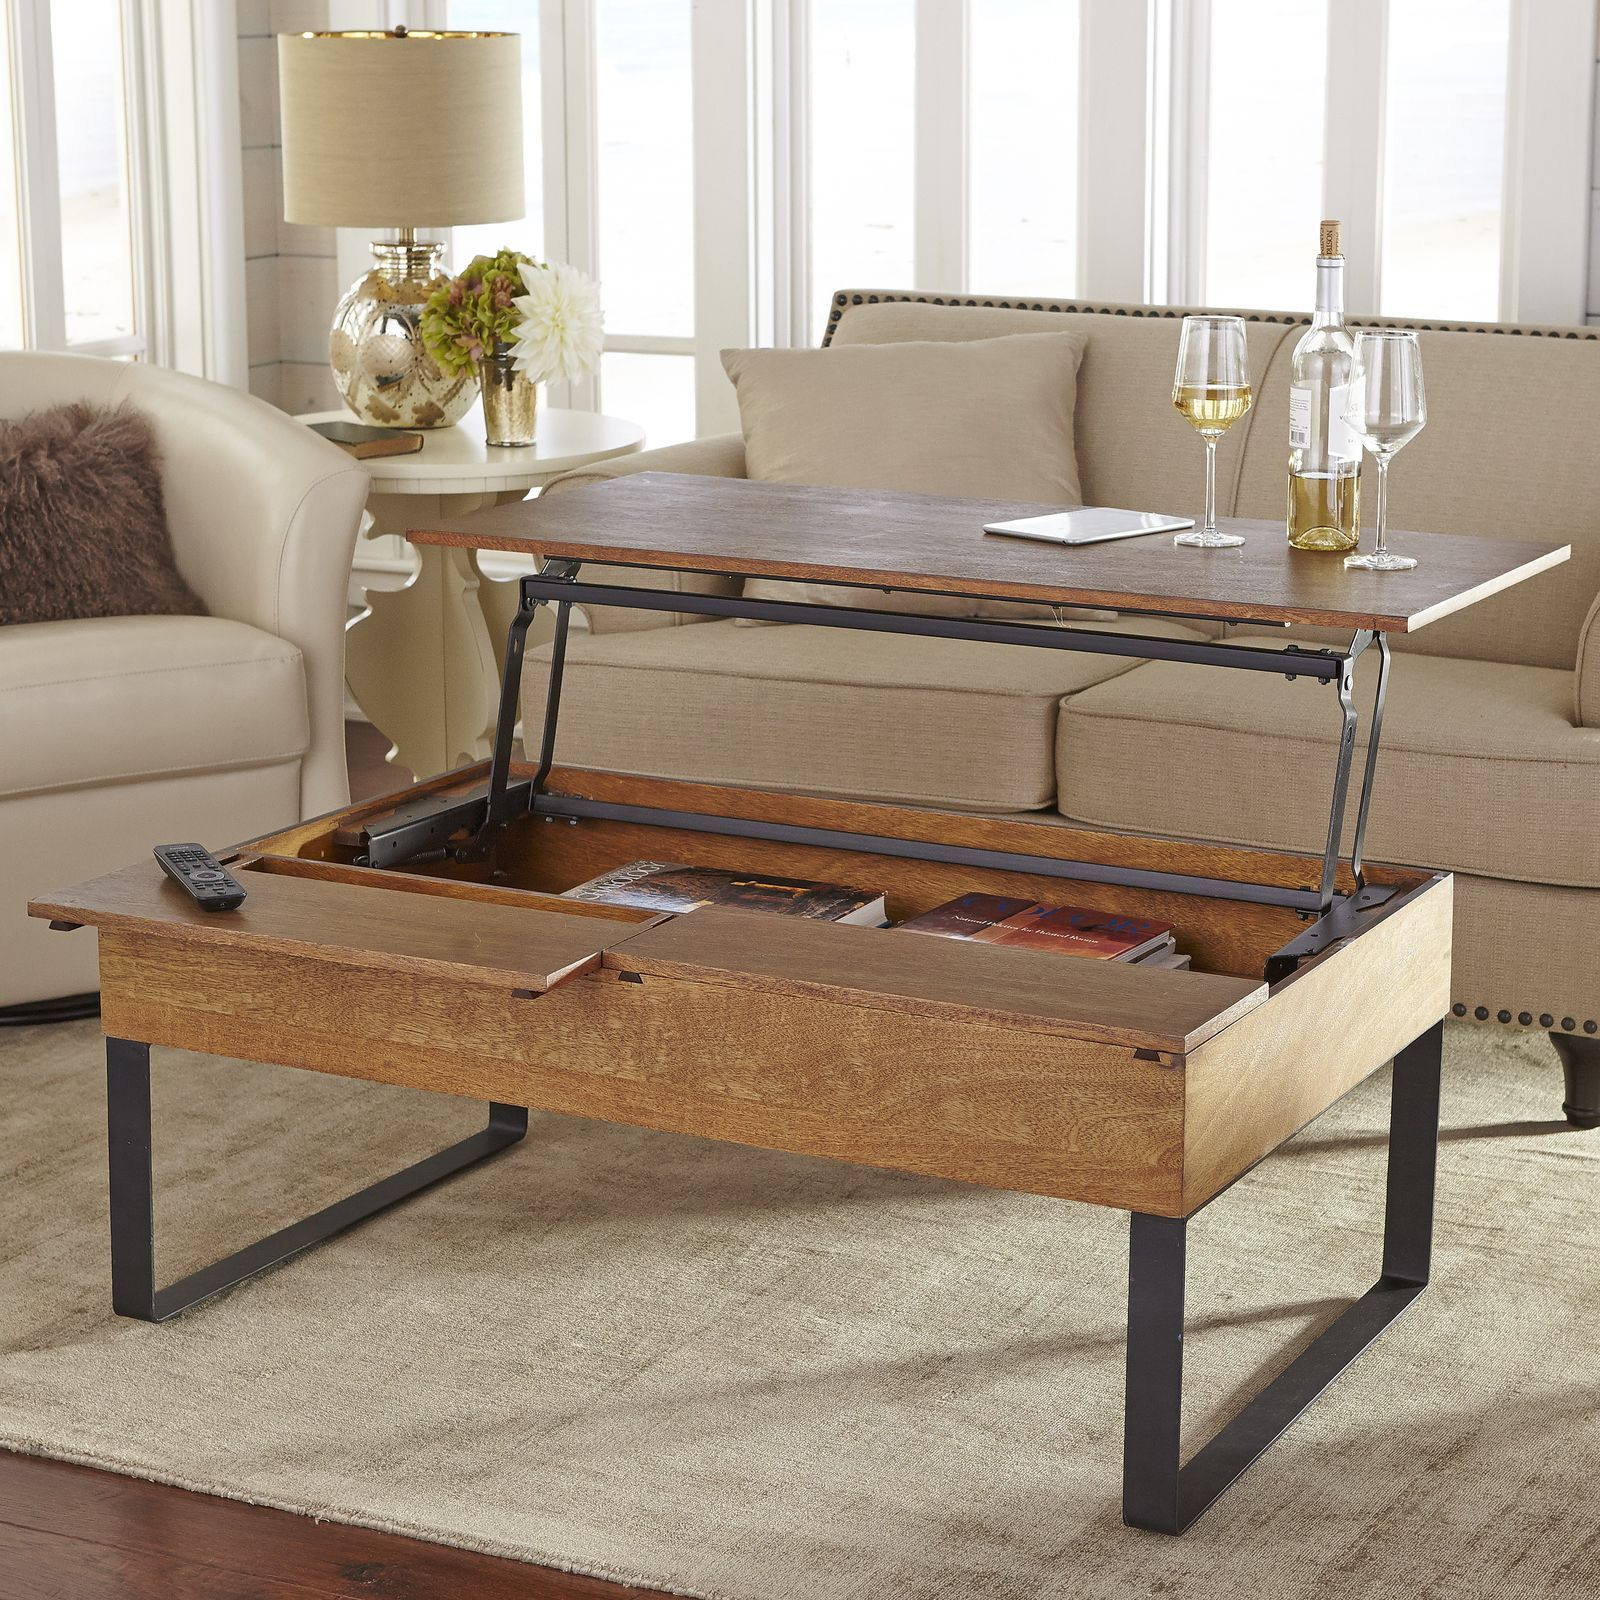 Mango wood coffee table with storage - Clean In Design Hugh Is Not Just An Ordinary Coffee Table Crafted Of Solid